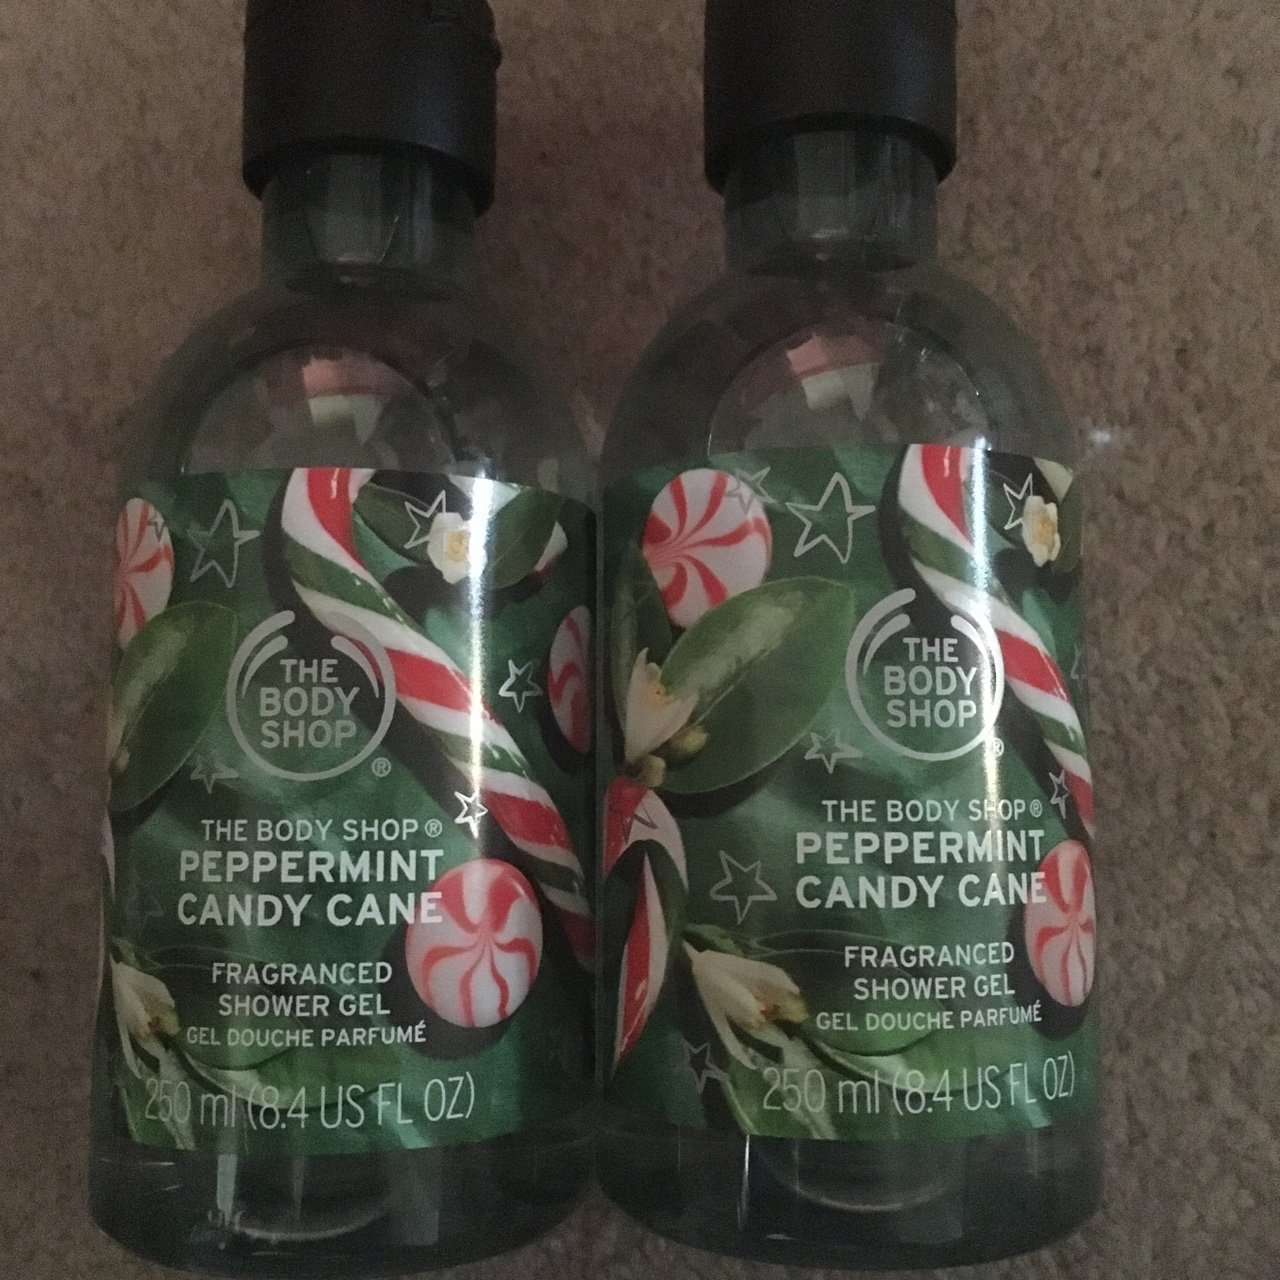 2 X The Bodyshop Peppermint Candy Cane Shower Gels New For X Depop